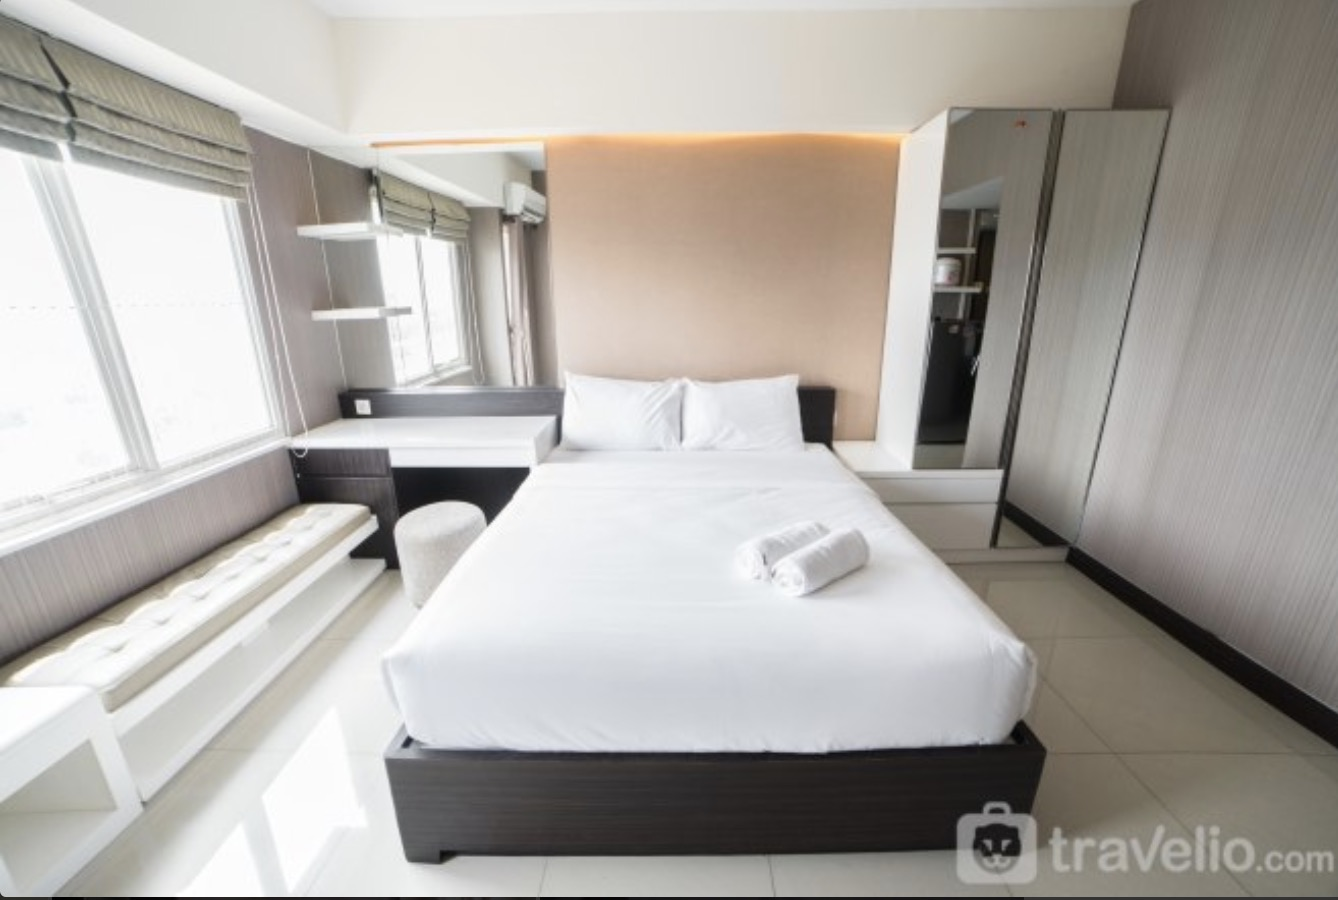 Travelio Promo Studio Apartment Galeri Ciumbuleuit 2 375k / Night